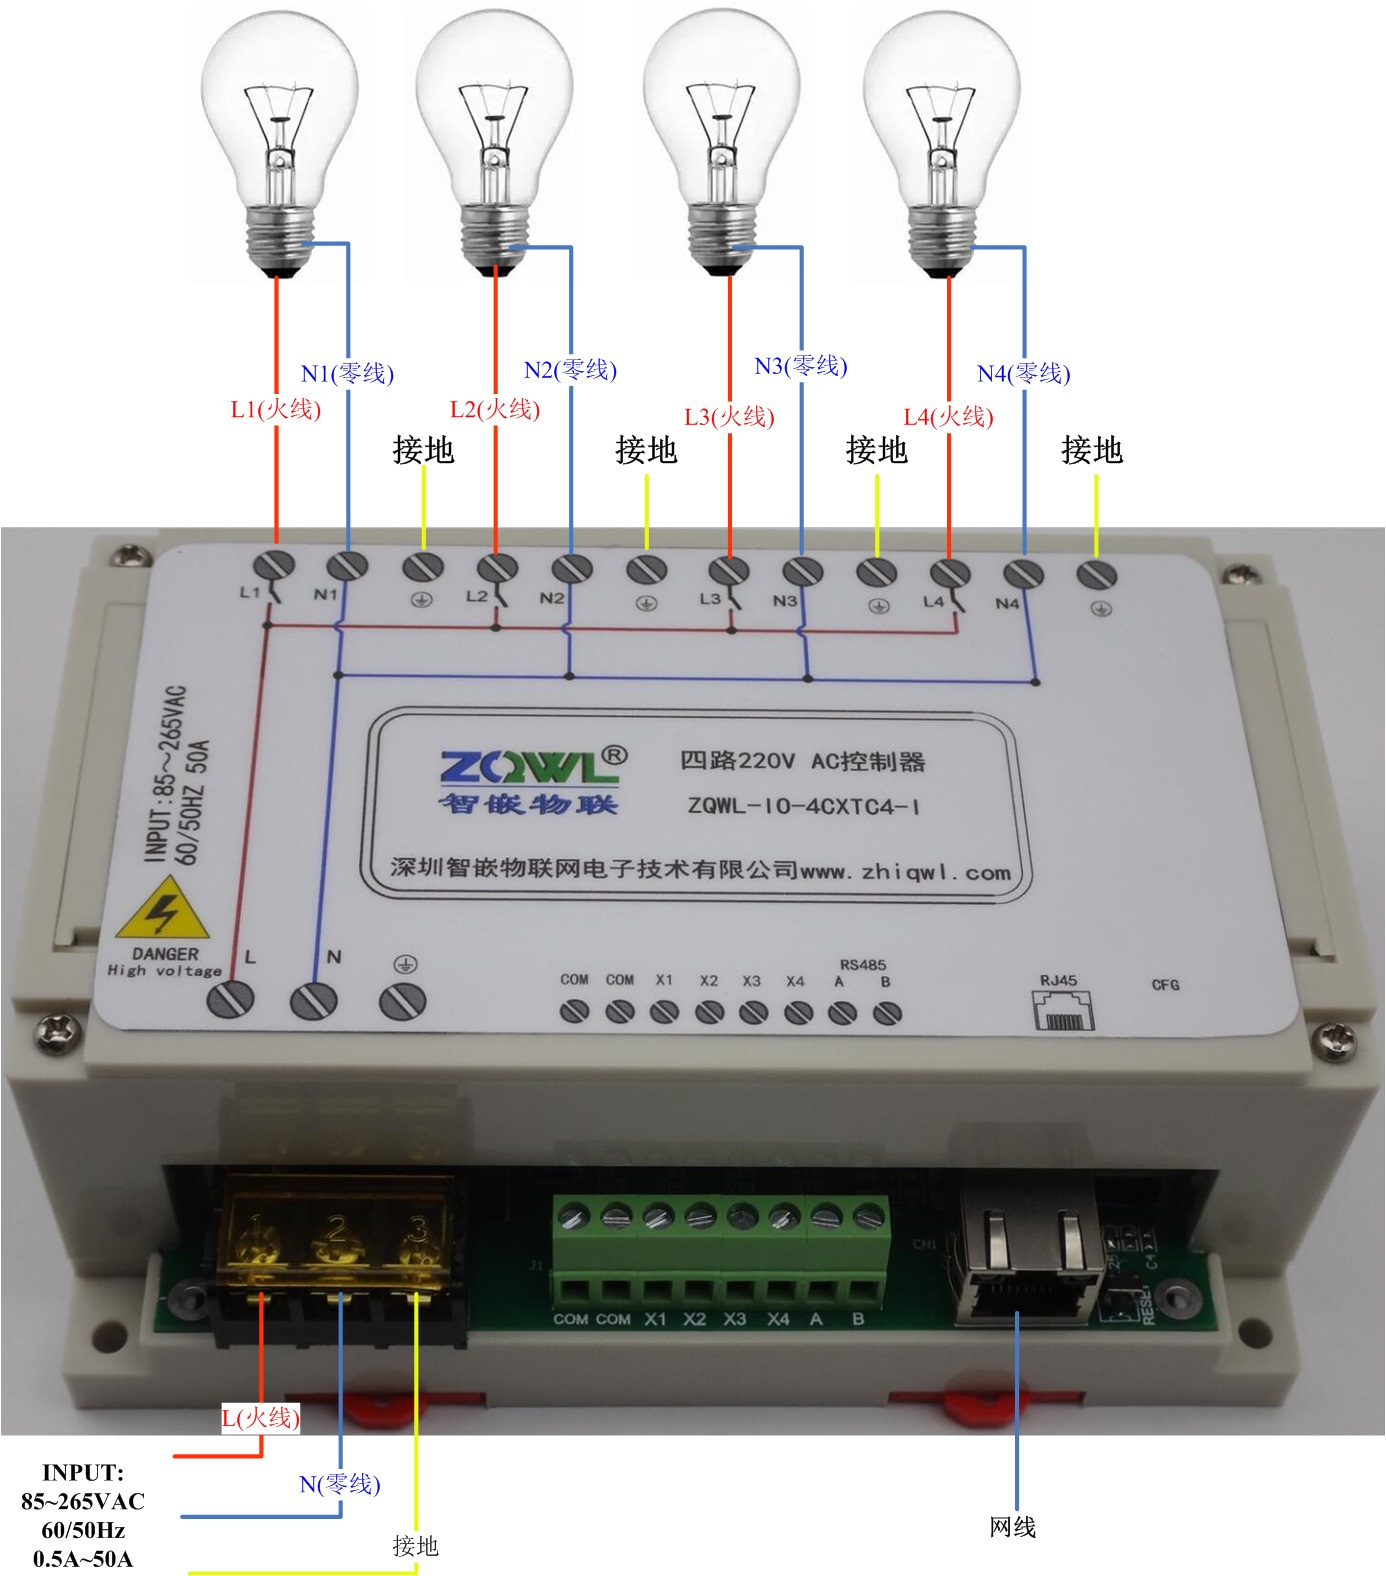 4-Channel Network 220VAC Controller/RS485/Modbus TCP RTU/Industrial Level4-Channel Network 220VAC Controller/RS485/Modbus TCP RTU/Industrial Level